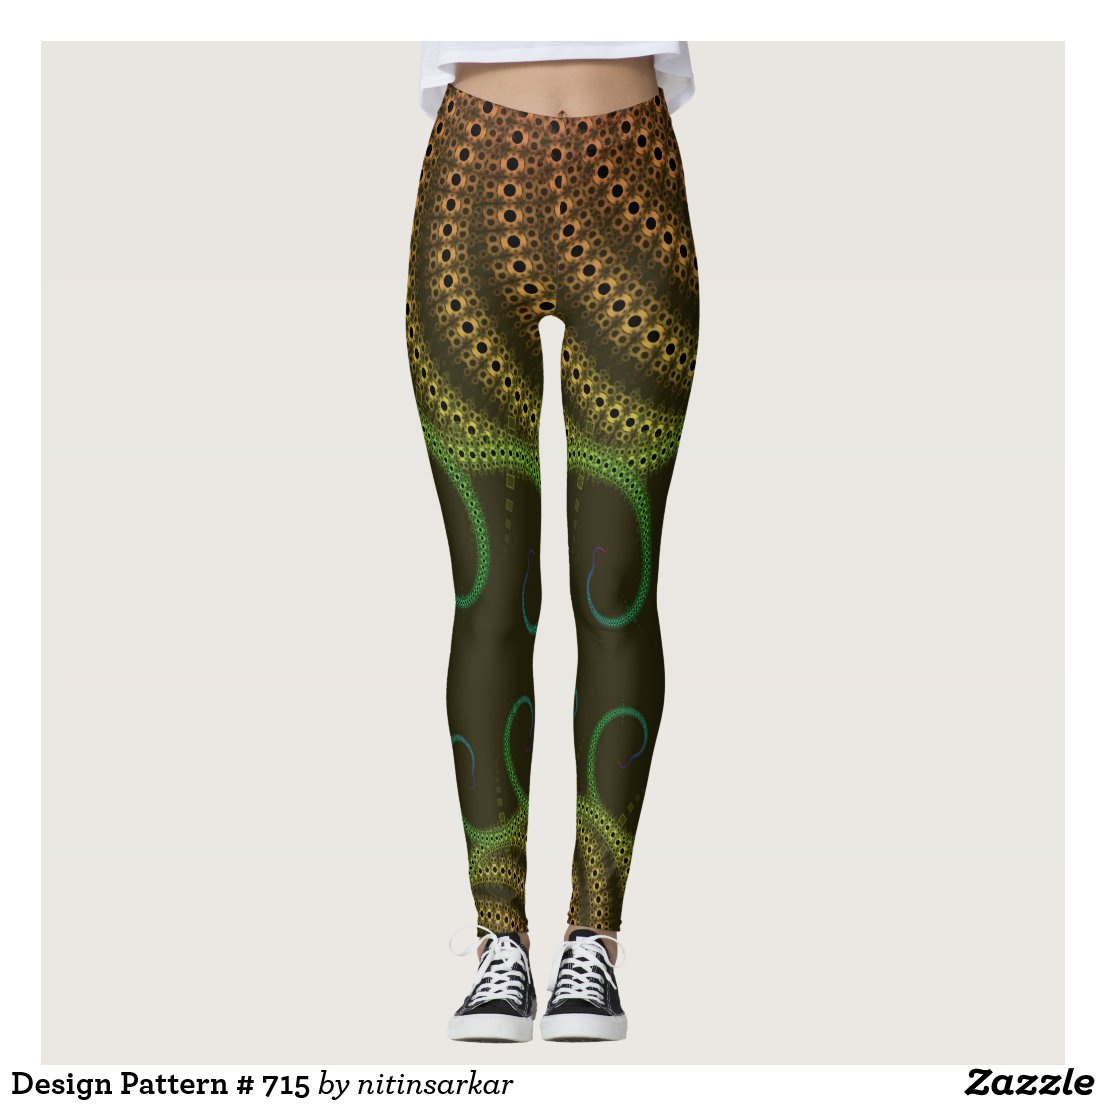 Design Pattern # 715 Leggings